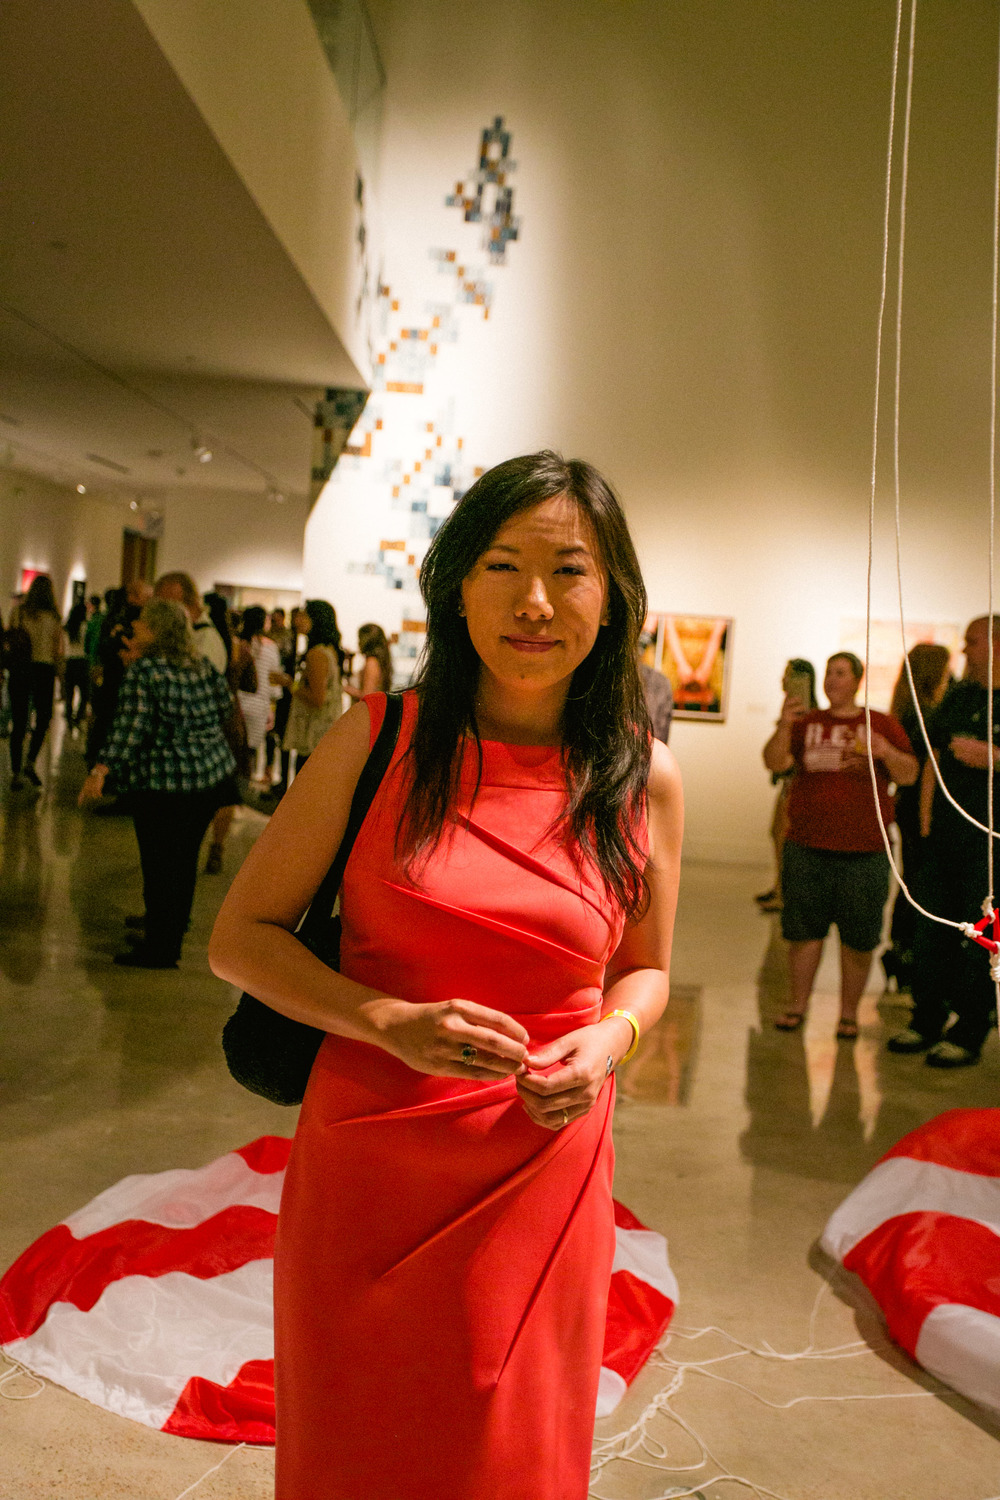 Ann Yin, Studio Art Major, with a focus in sculptures.      Her works are inspired by science, technology, engineering and math, human impact on the natural world and climate change.